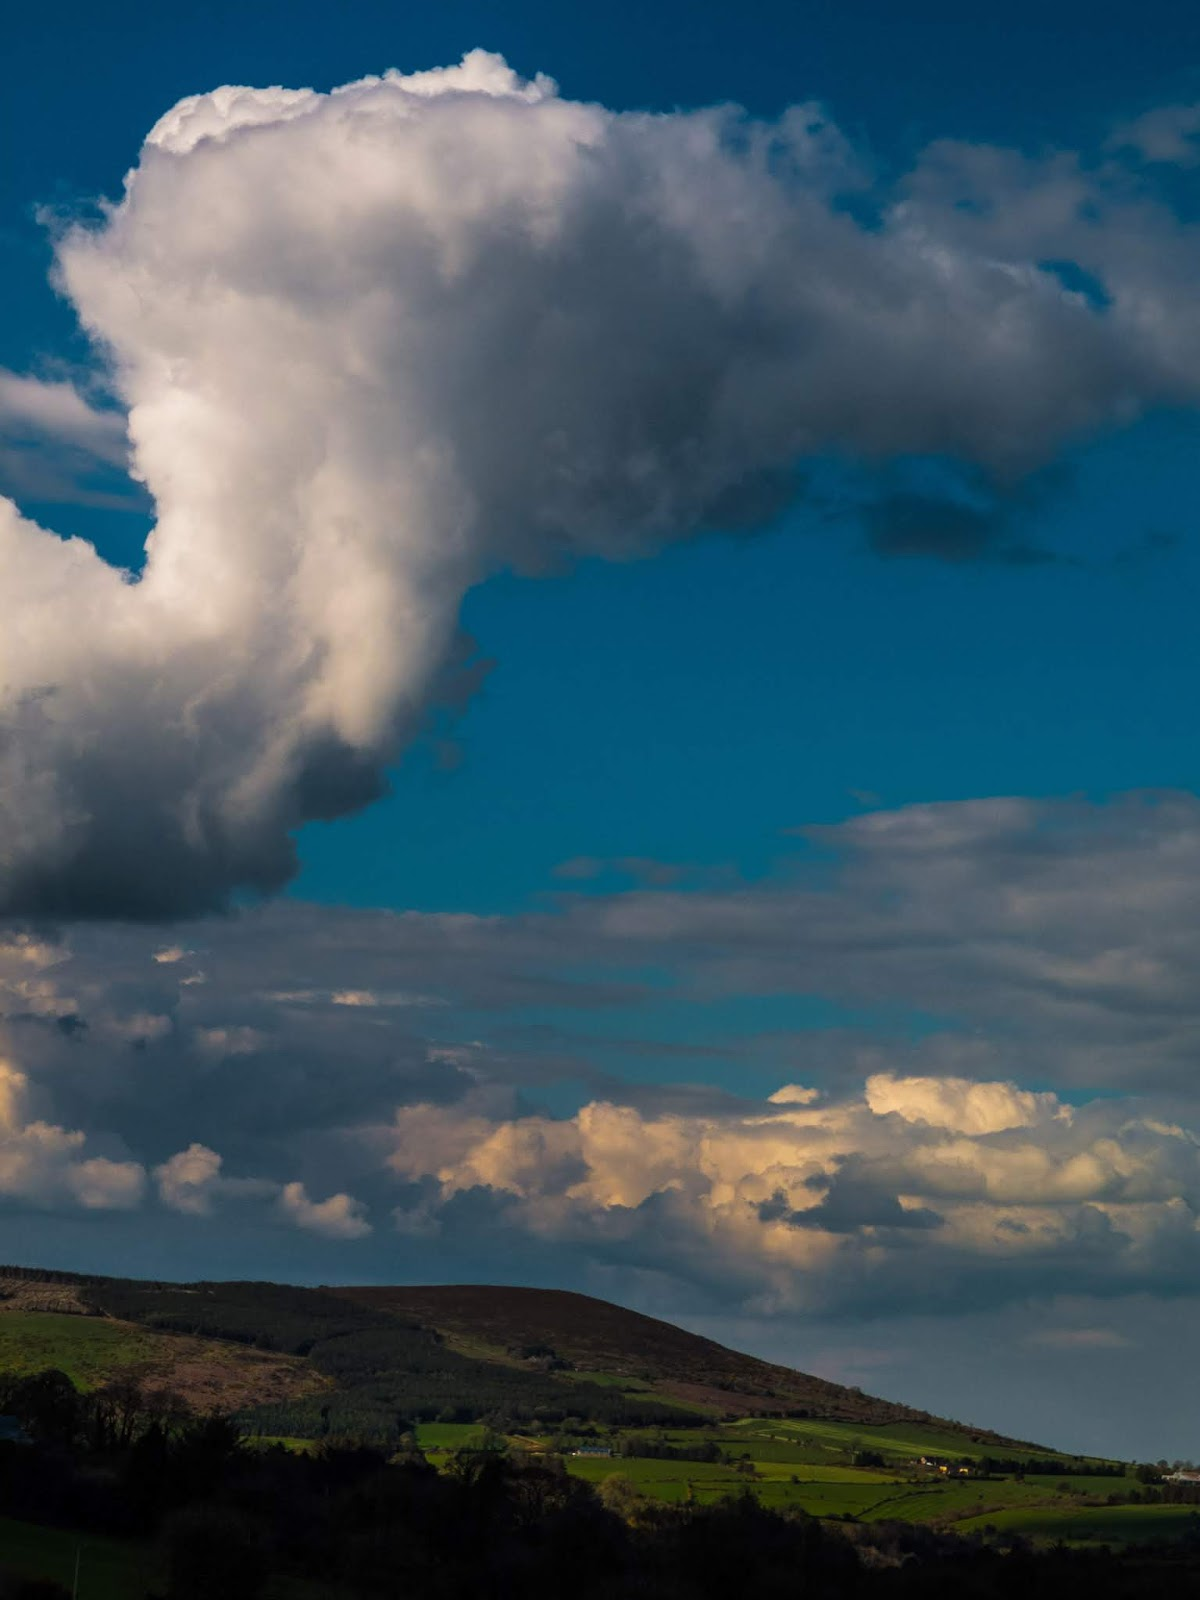 A big cloud hanging over a mountain in North Cork.